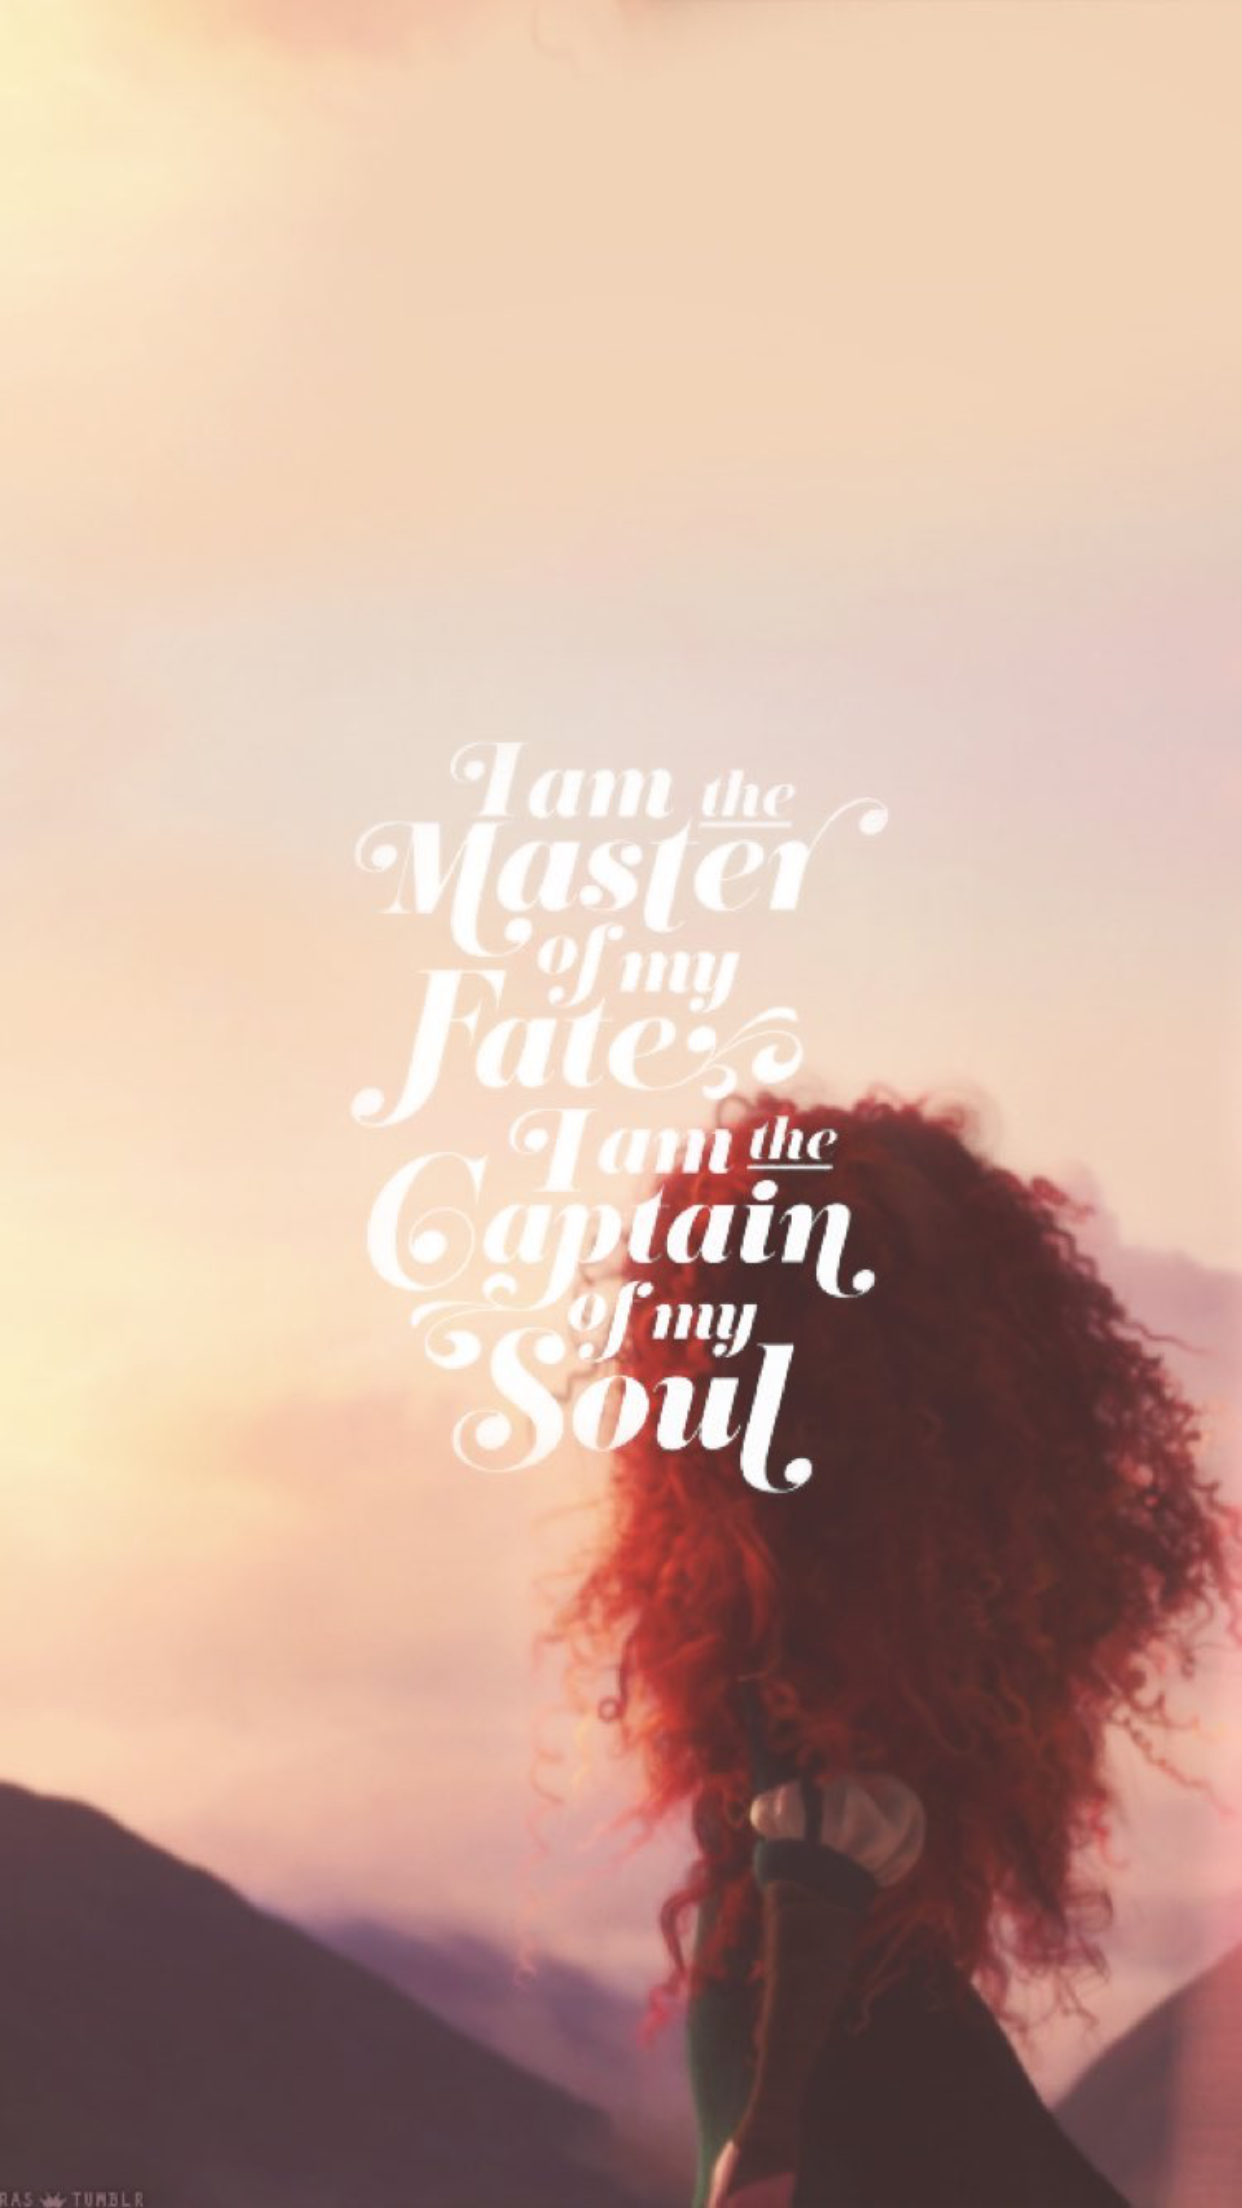 Brave Fate Quote Disney Background Disney Phone Wallpaper